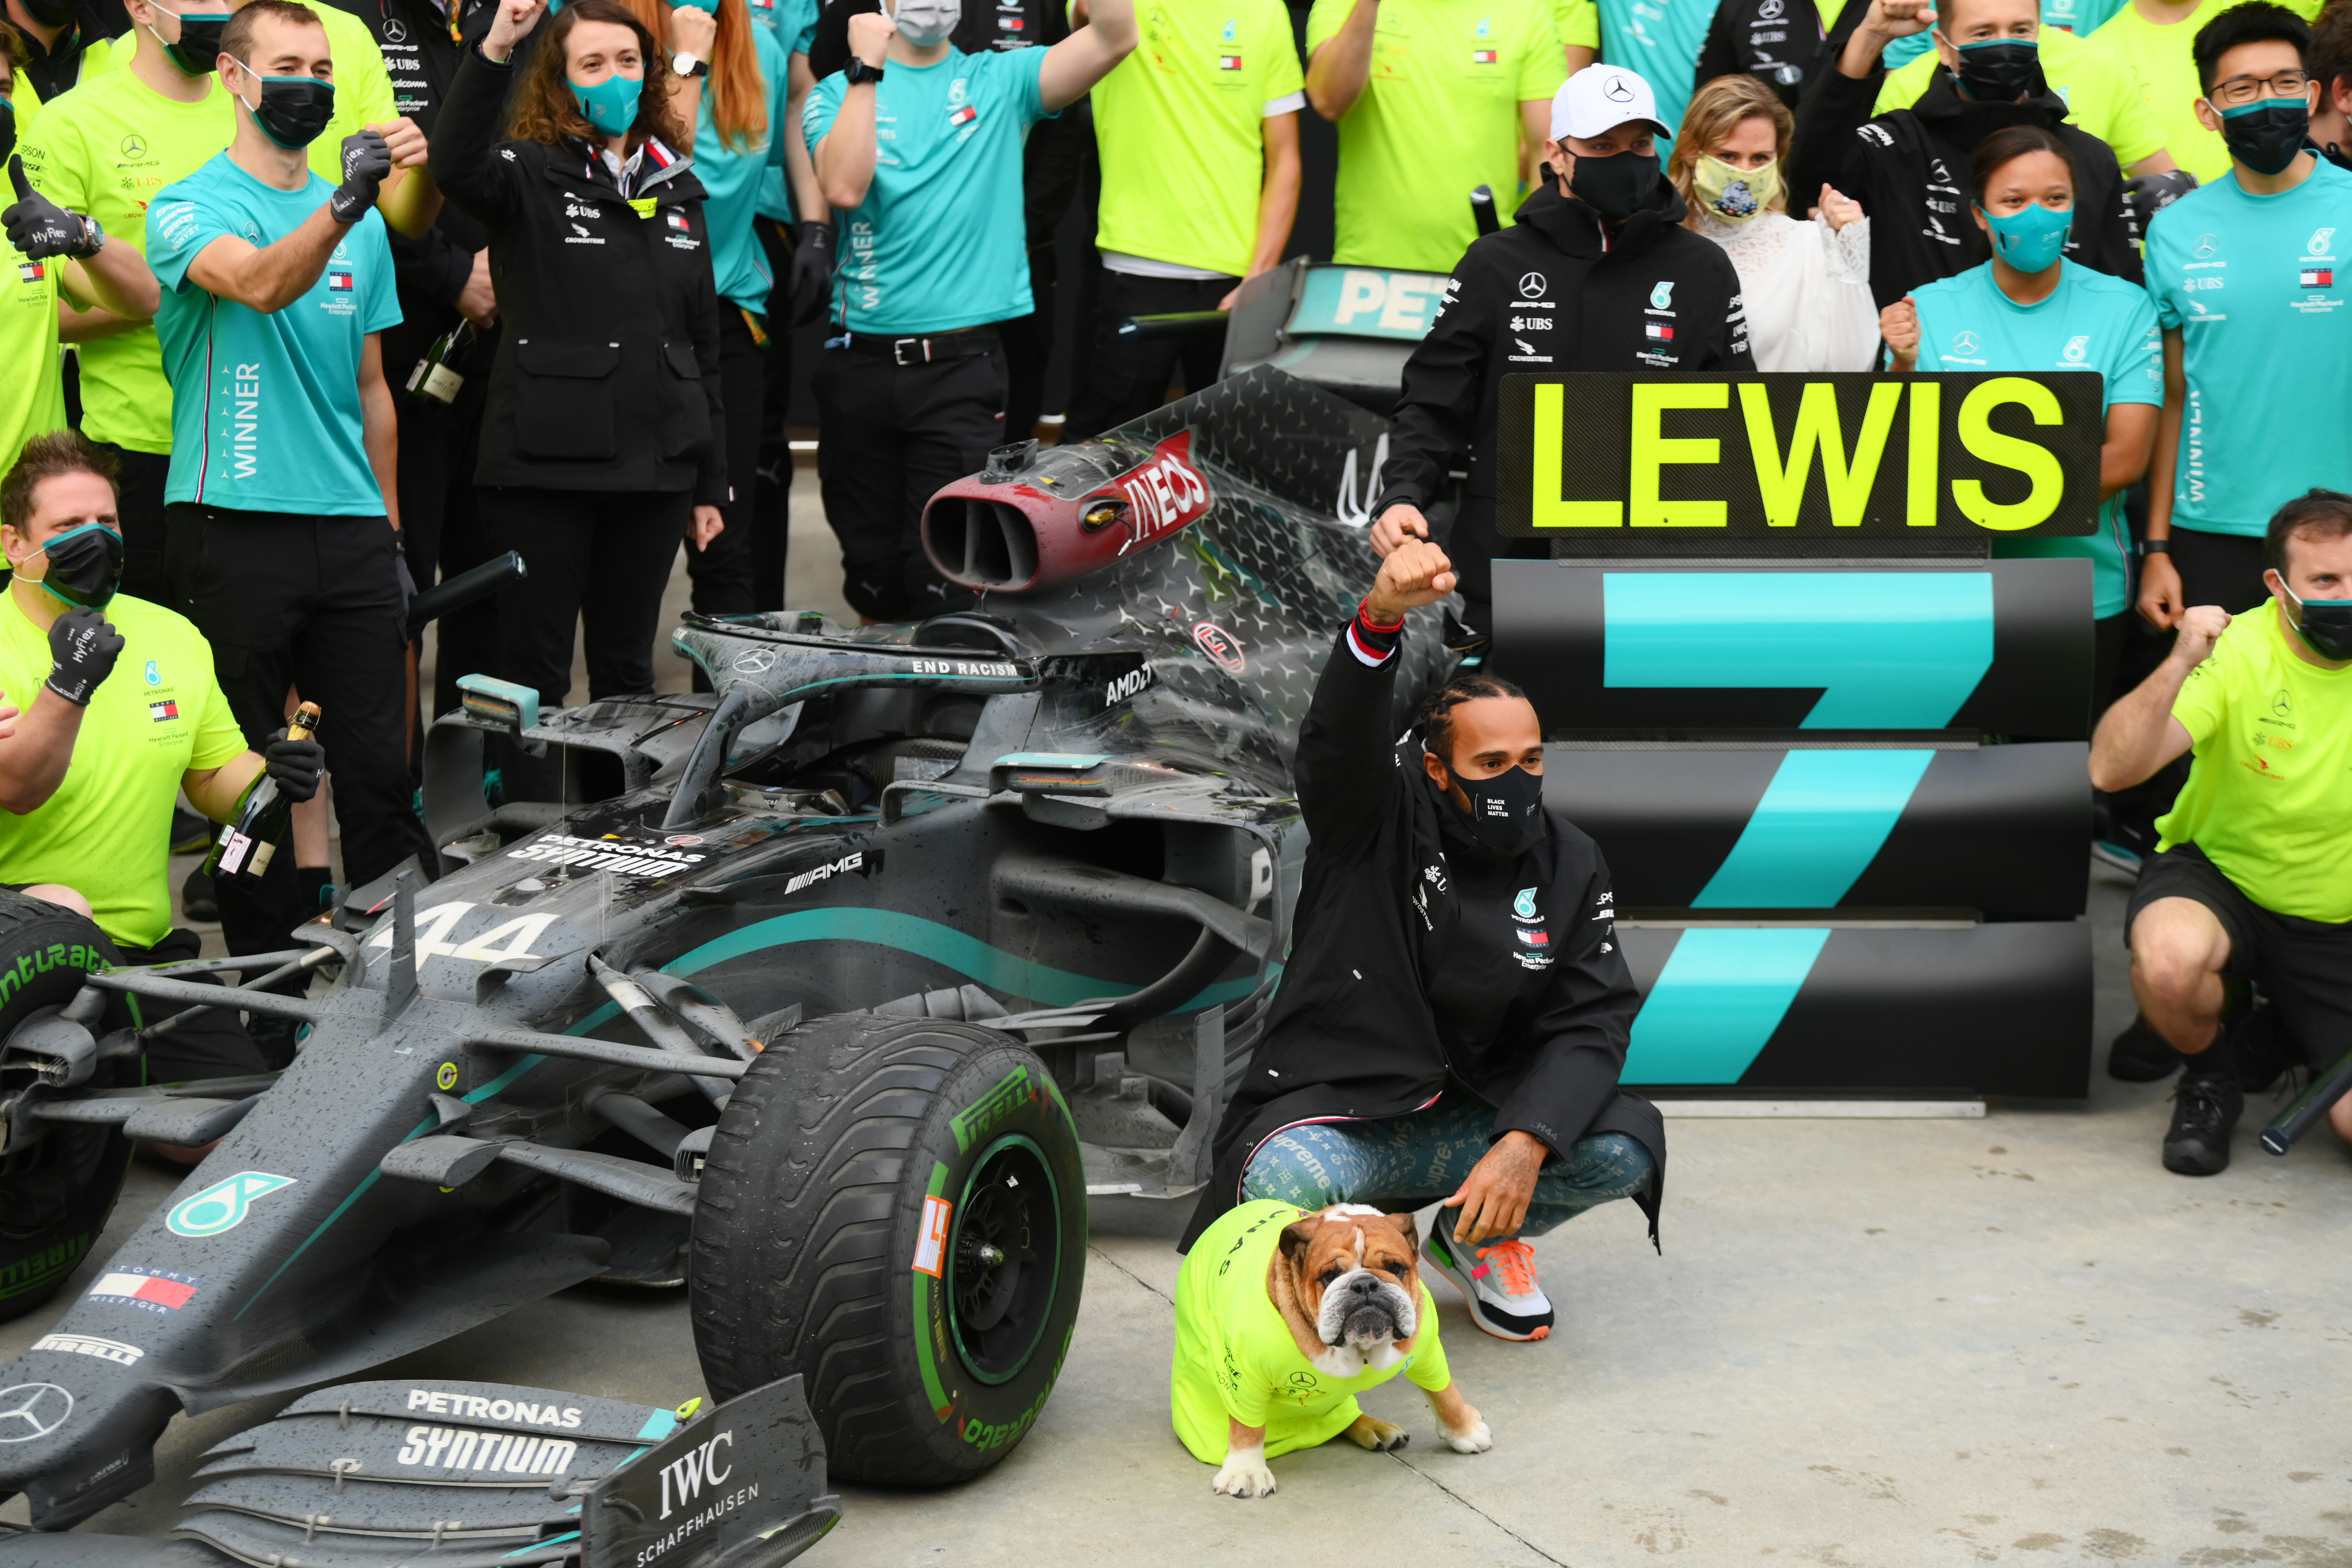 Lewis Hamilton seventh title